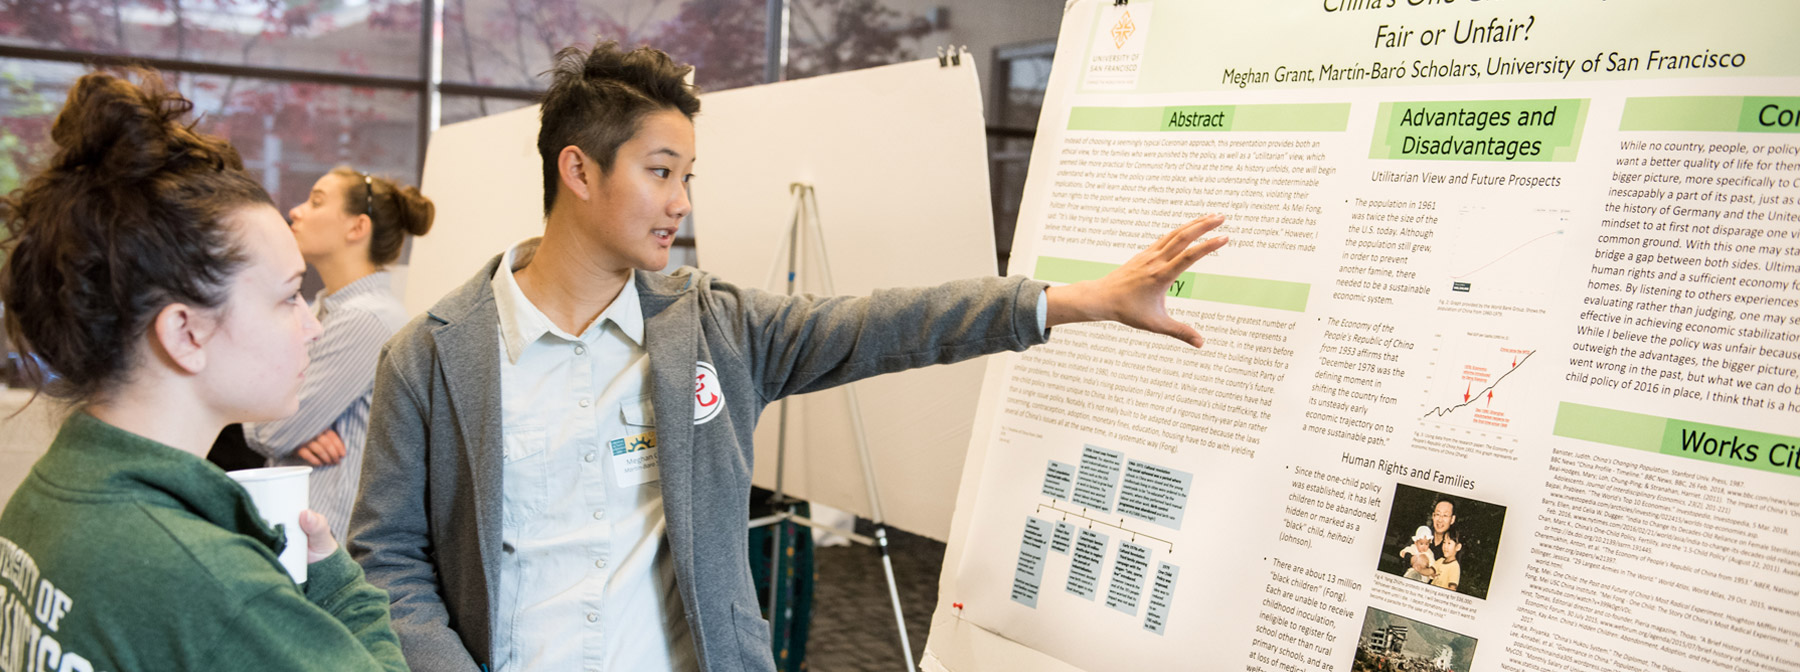 Student explaining research presentation to CARD attendee